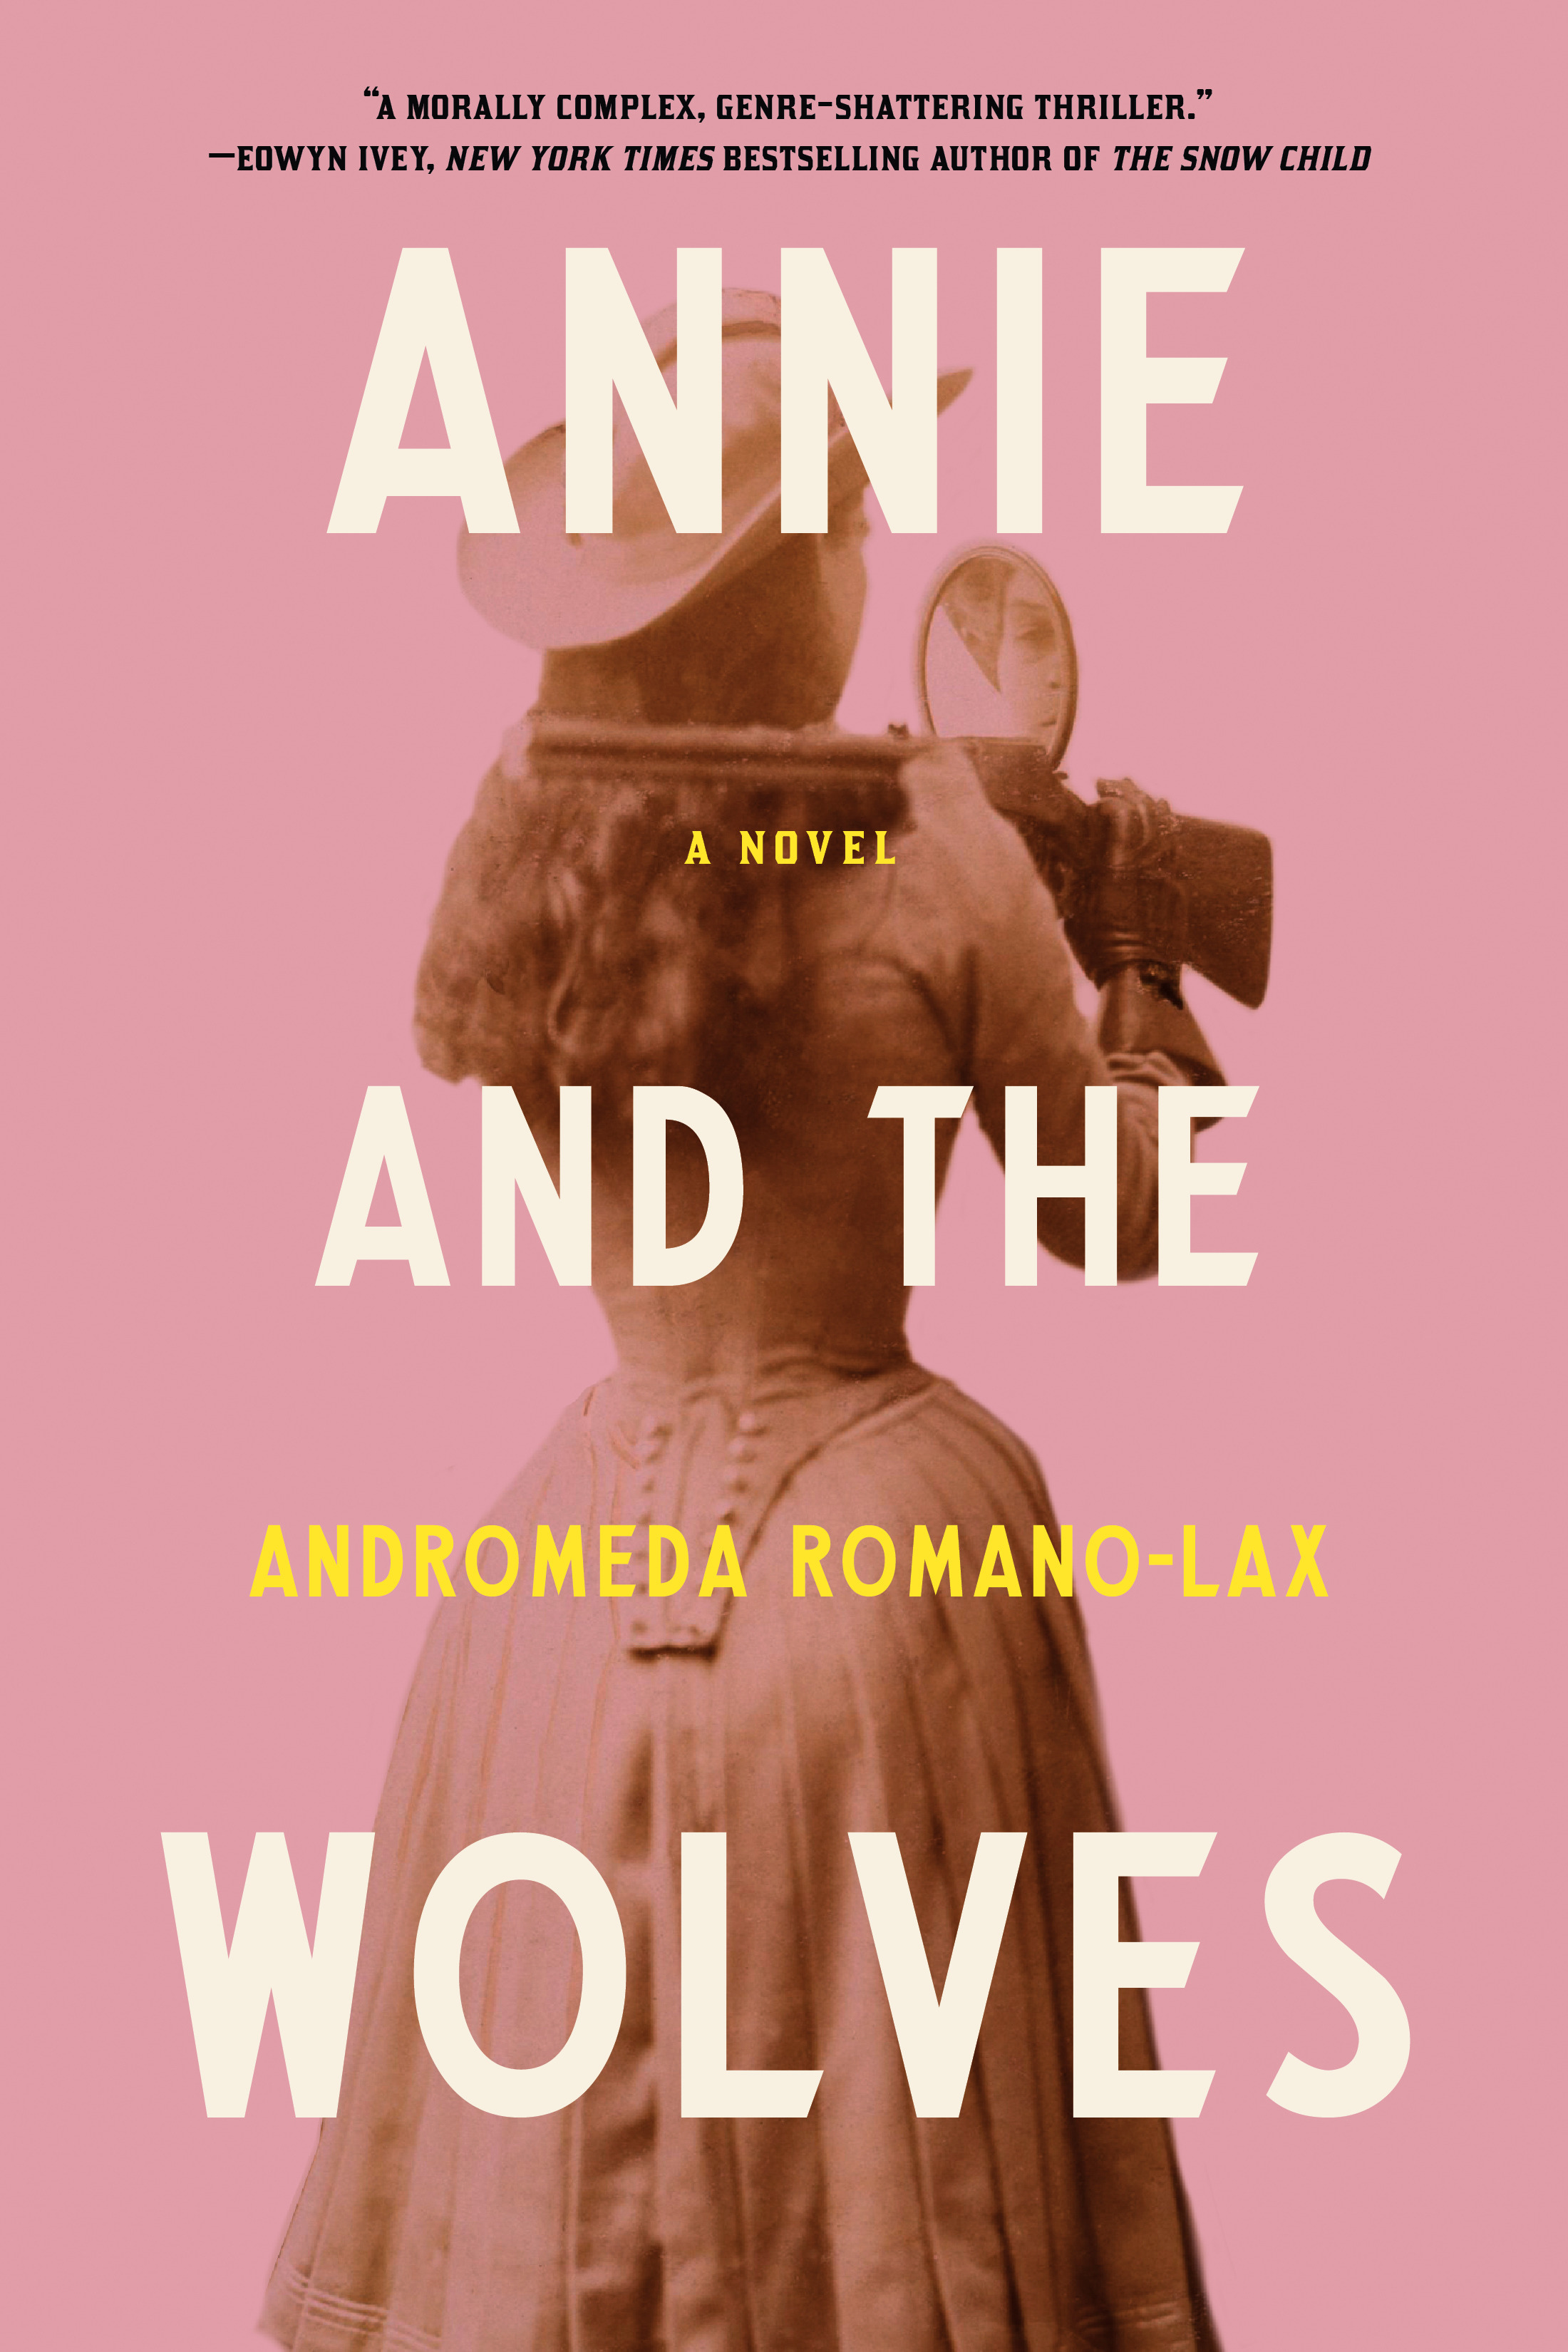 Soho.Feb 2.2021.Annie and the Wolves RomanoLax